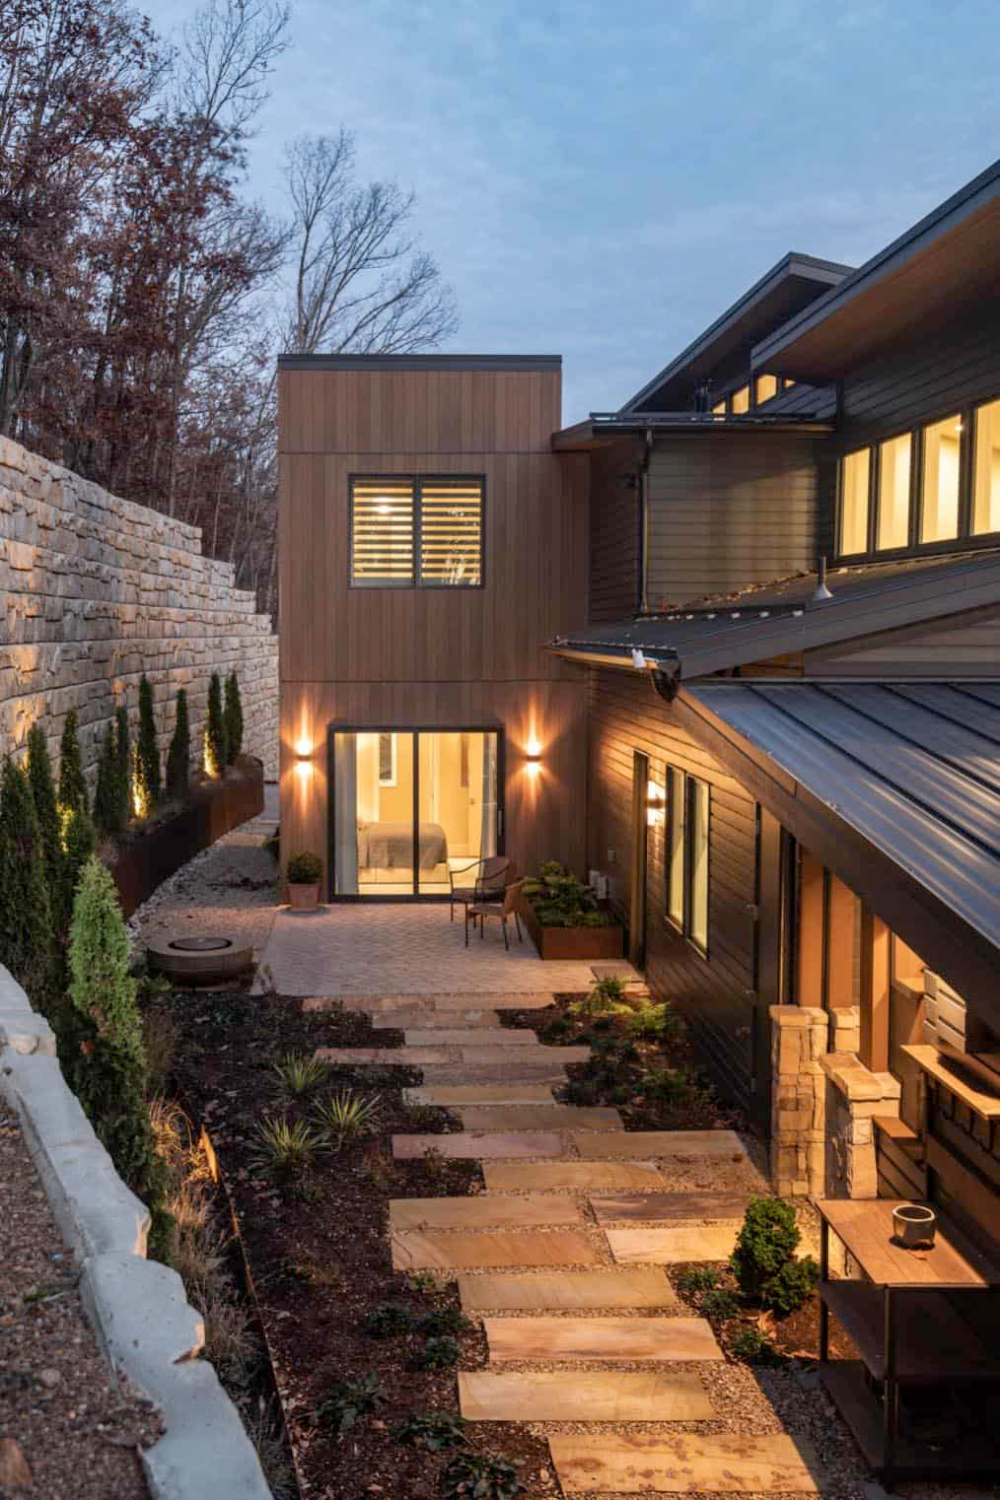 Beautifully Inspiring Mountain Home Nestled In The Blue Ridge Mountains In 2020 Building Design Contemporary House Exterior Mountain Home